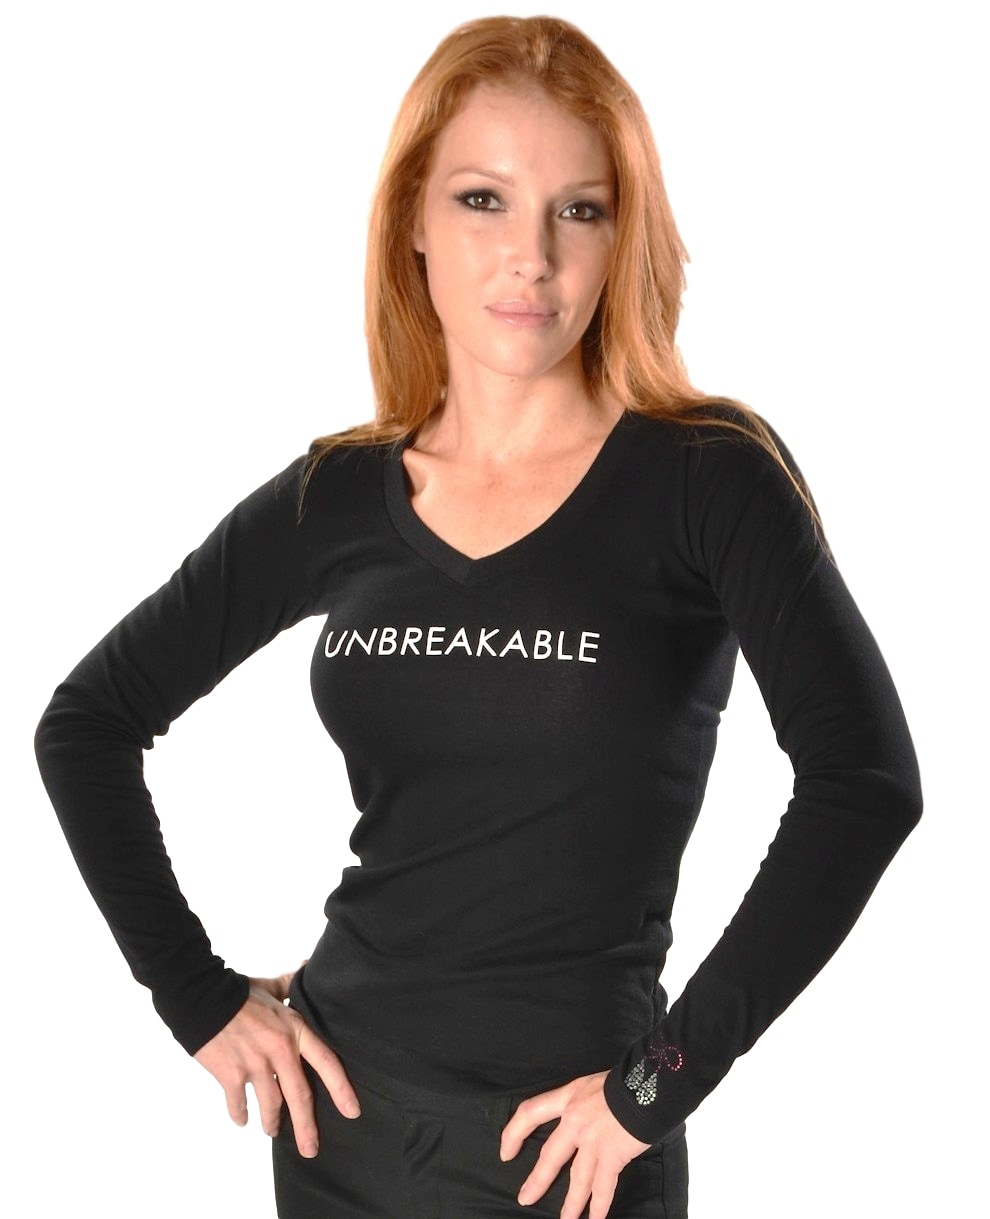 she-balls, womens apparel,Unbreakable 1 - Copy_clipped_rev_1.jpeg